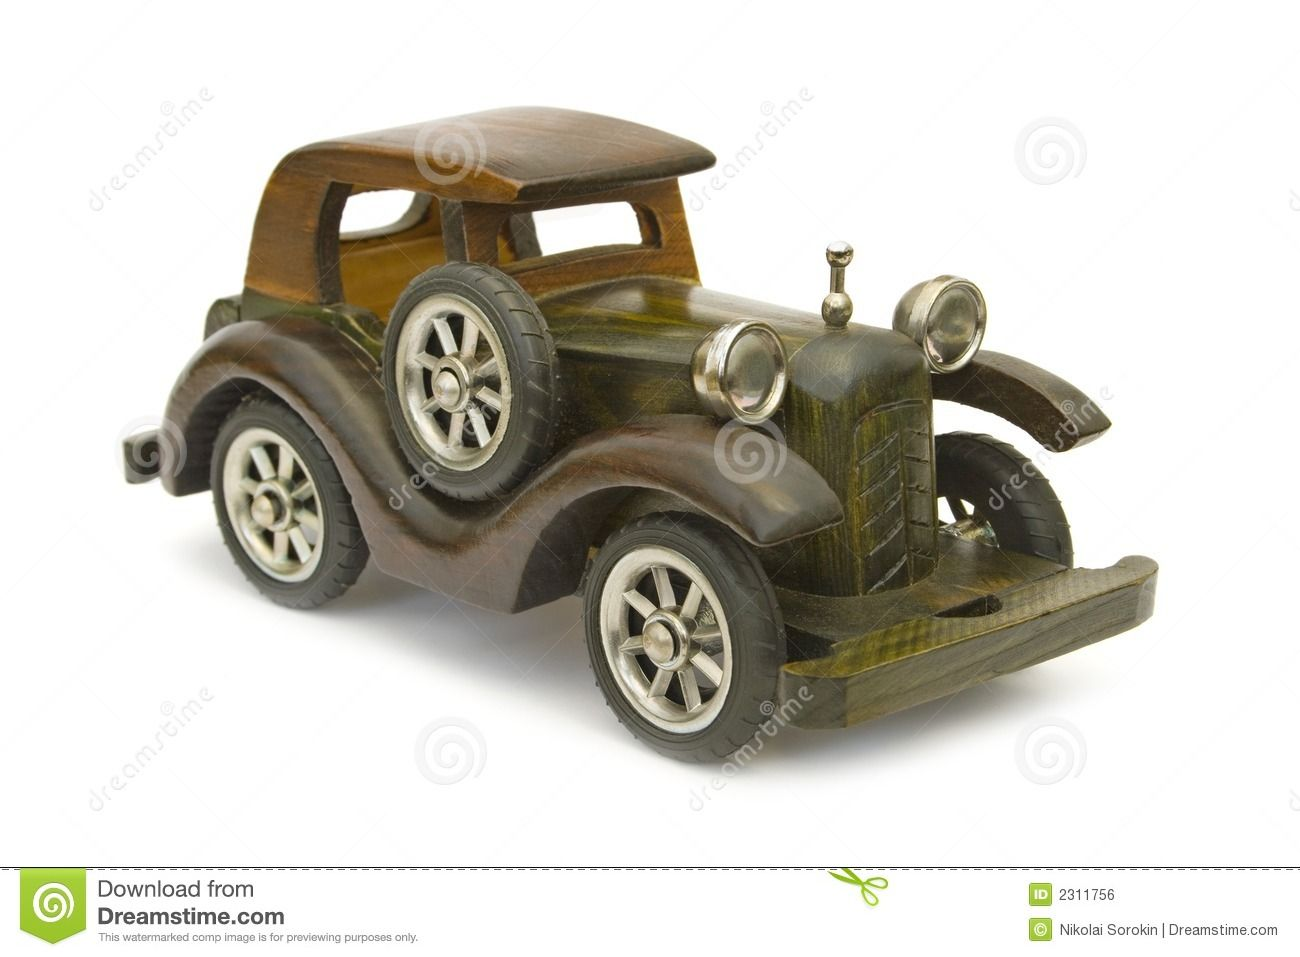 Wooden Toy Car Plans | Retro wooden car (model), isolated on white ...